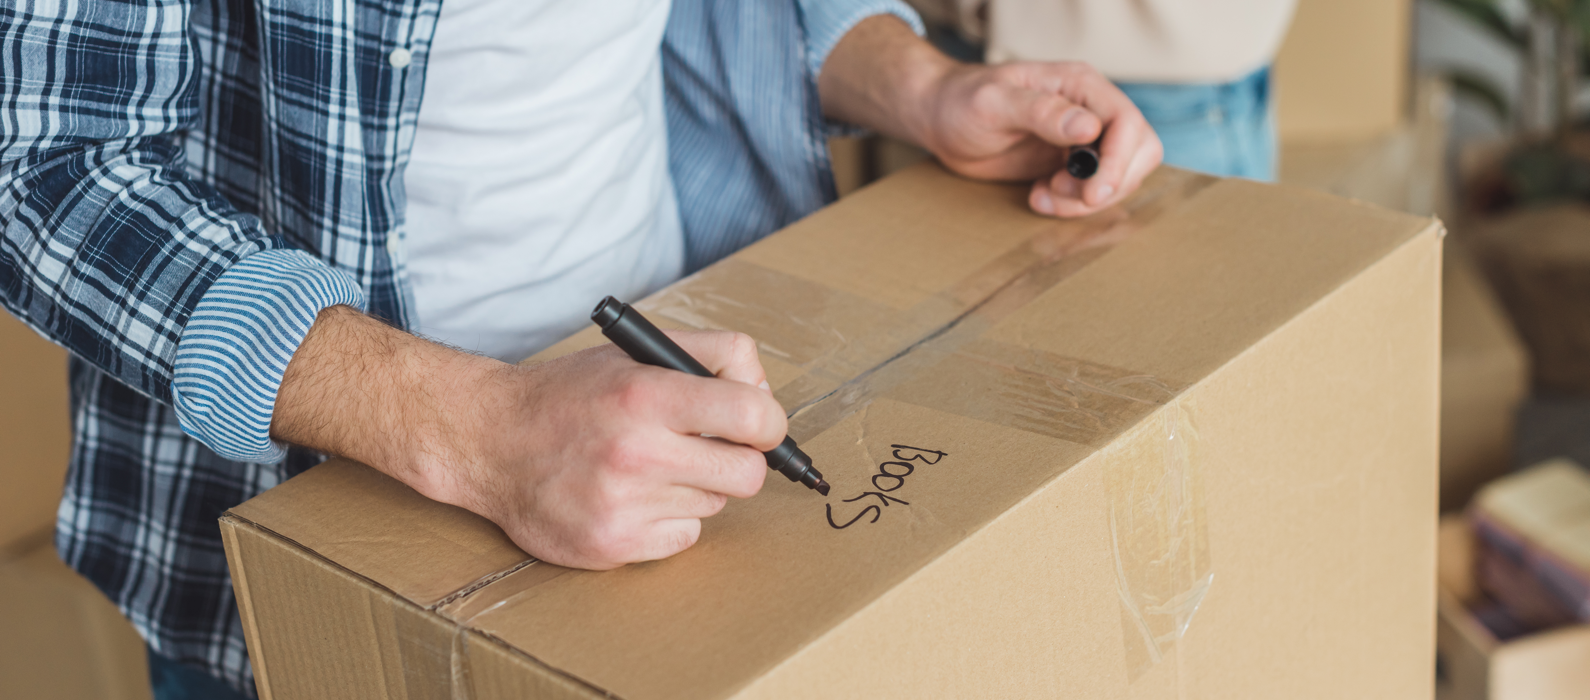 7 Tips to Stay Organized For Your Move Featured Image